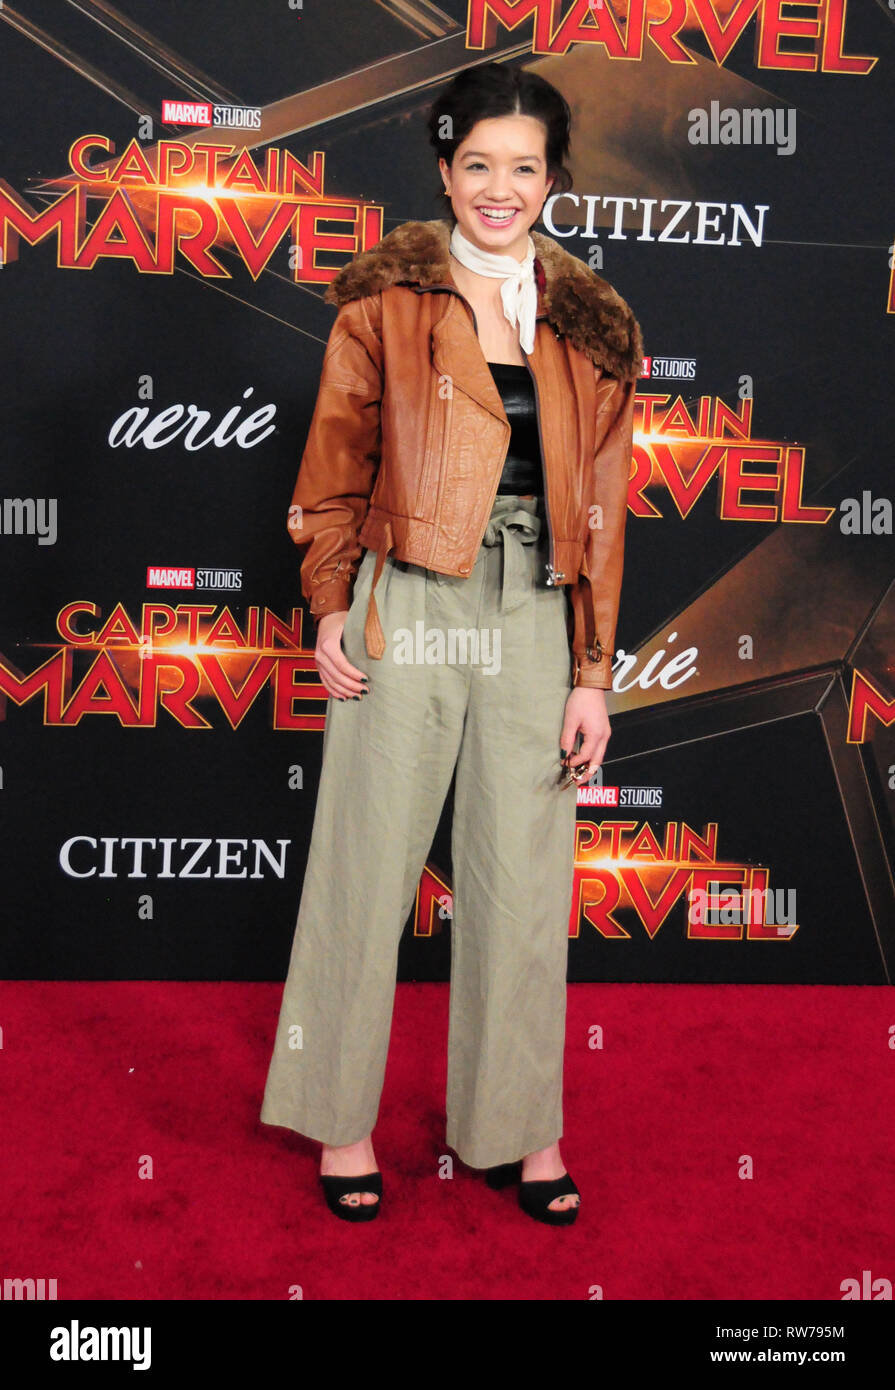 Hollywood, USA. 04th Mar, 2019. HOLLYWOOD, CA - MARCH 4: Actress Peyton Elizabeth Lee attends the World Premiere of Marvel Studios 'Captain Marvel' on March 4, 2019 at El Capitan Theatre in Hollywood, California. Credit: Barry King/Alamy Live News - Stock Image